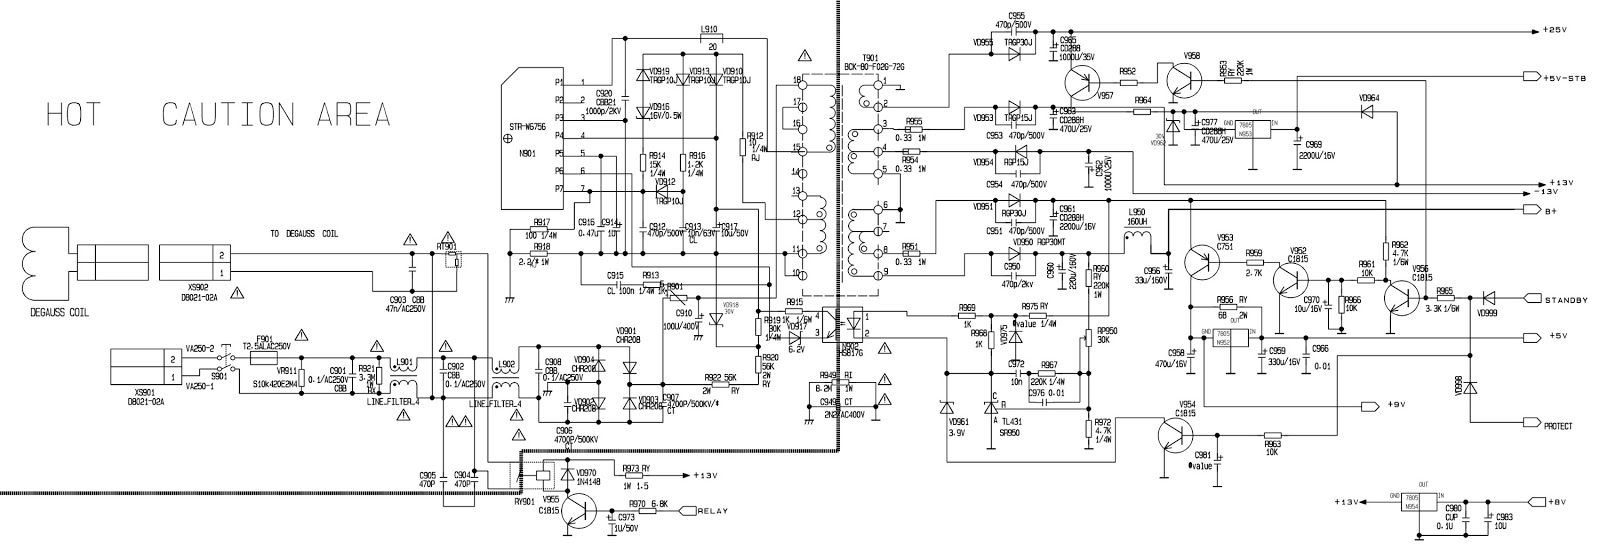 bpl tv circuit diagram download rh mamaambrosia com bpl tv power supply  diagram bpl tv power supply diagram